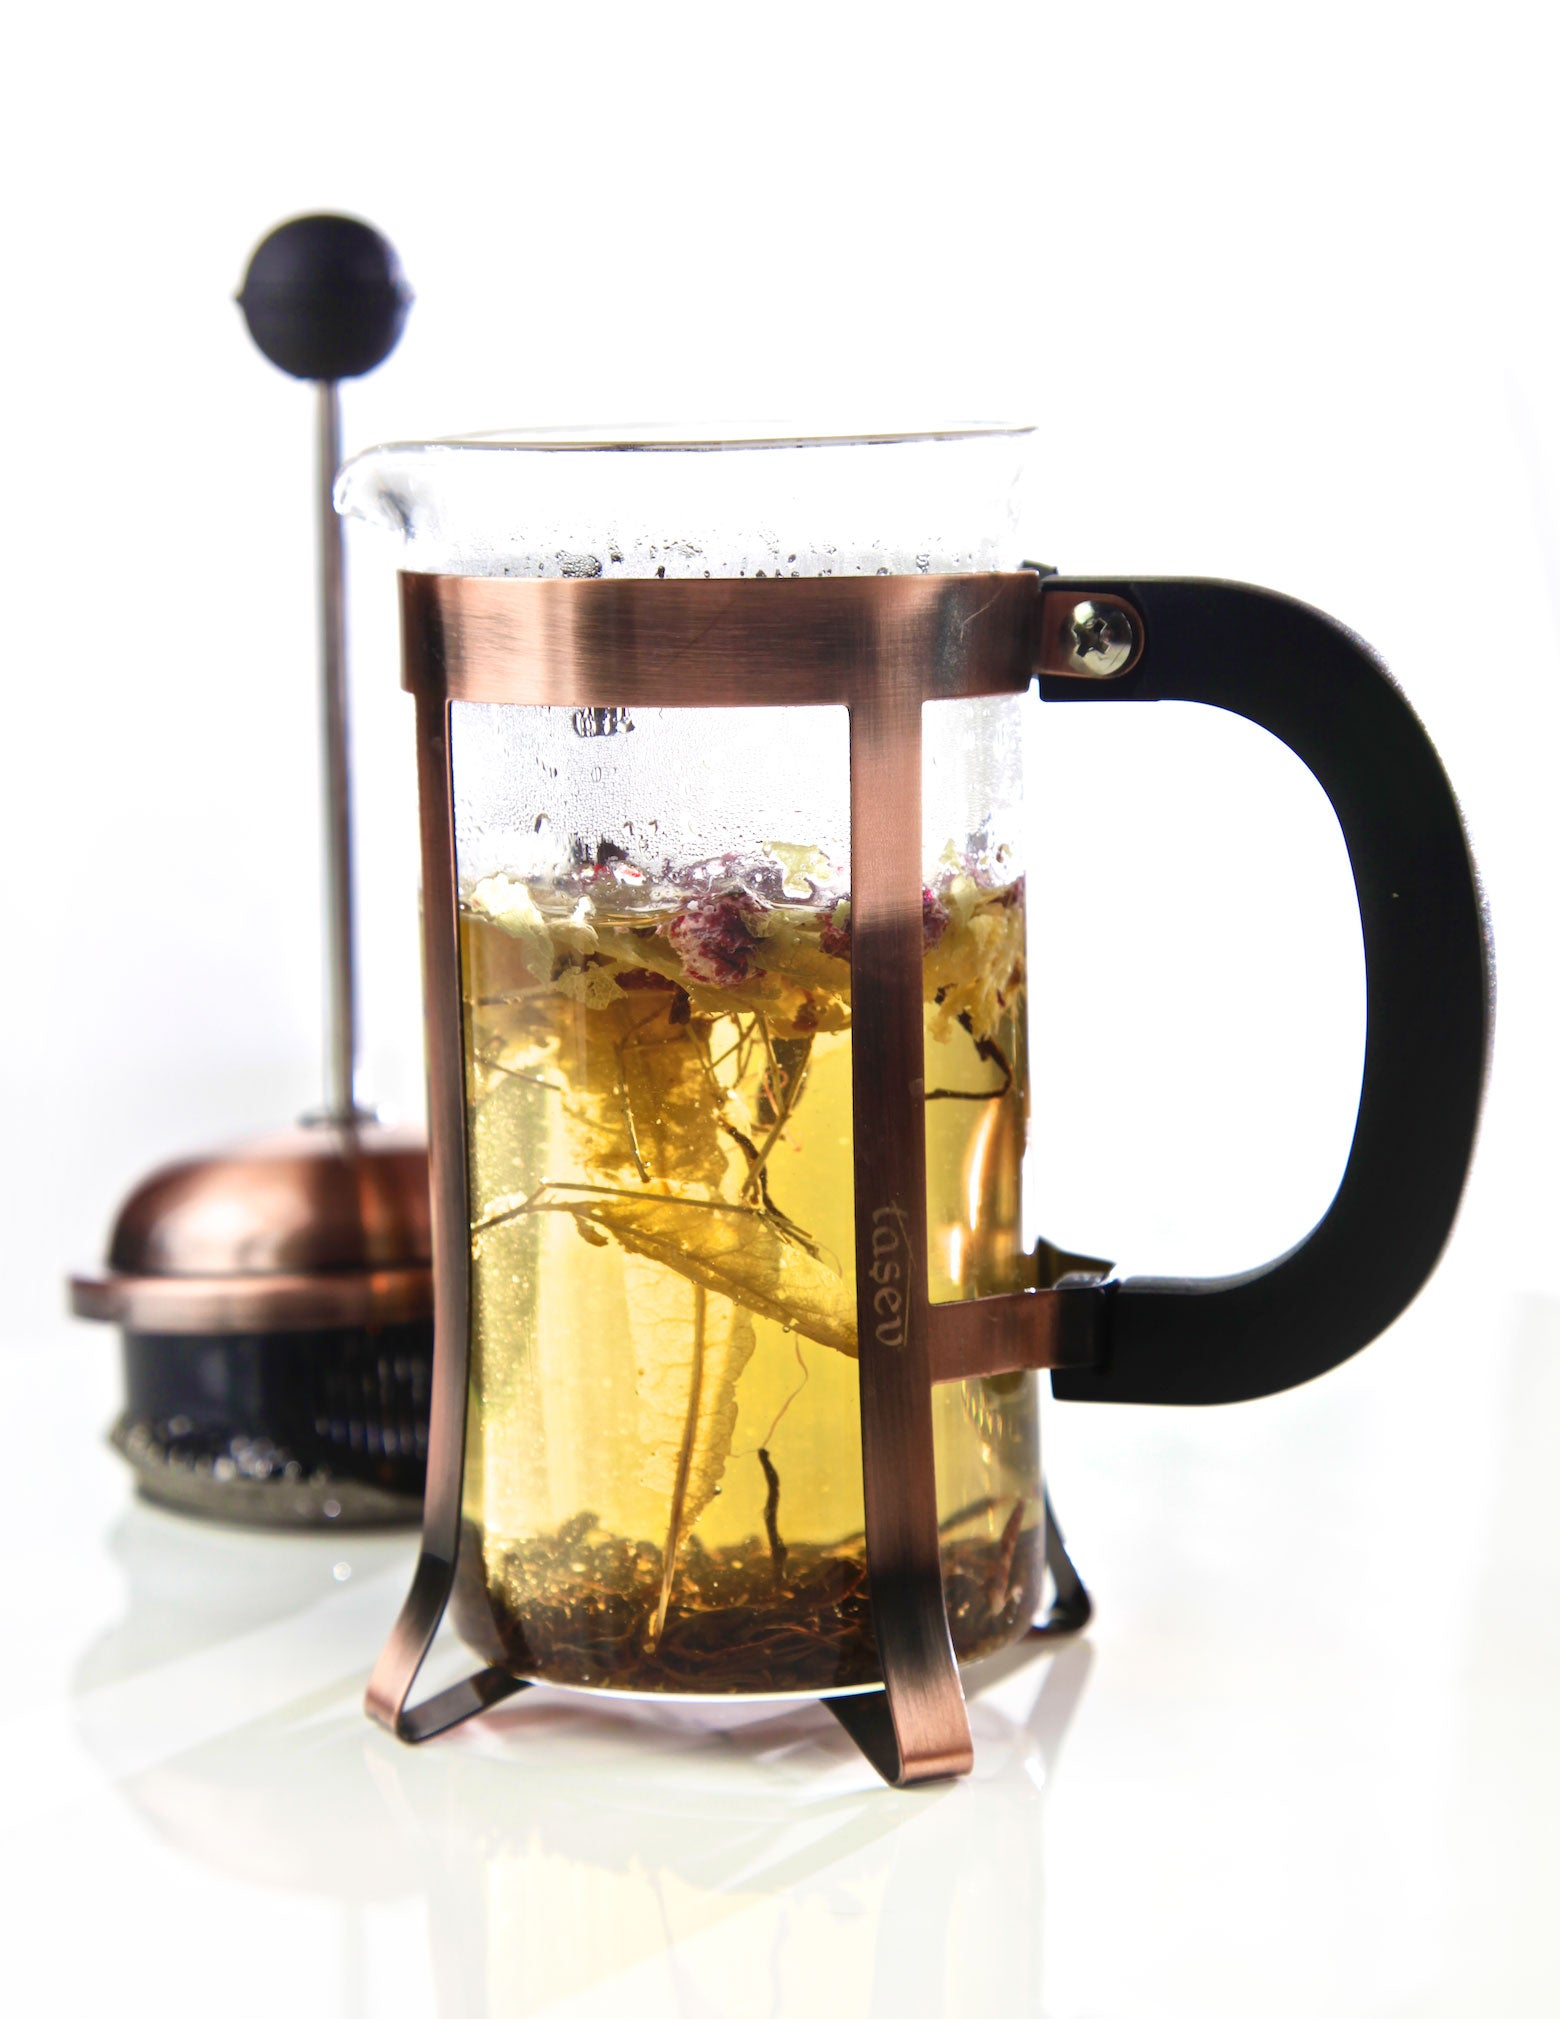 Teapress (Frenchpress for tea) 350 ml